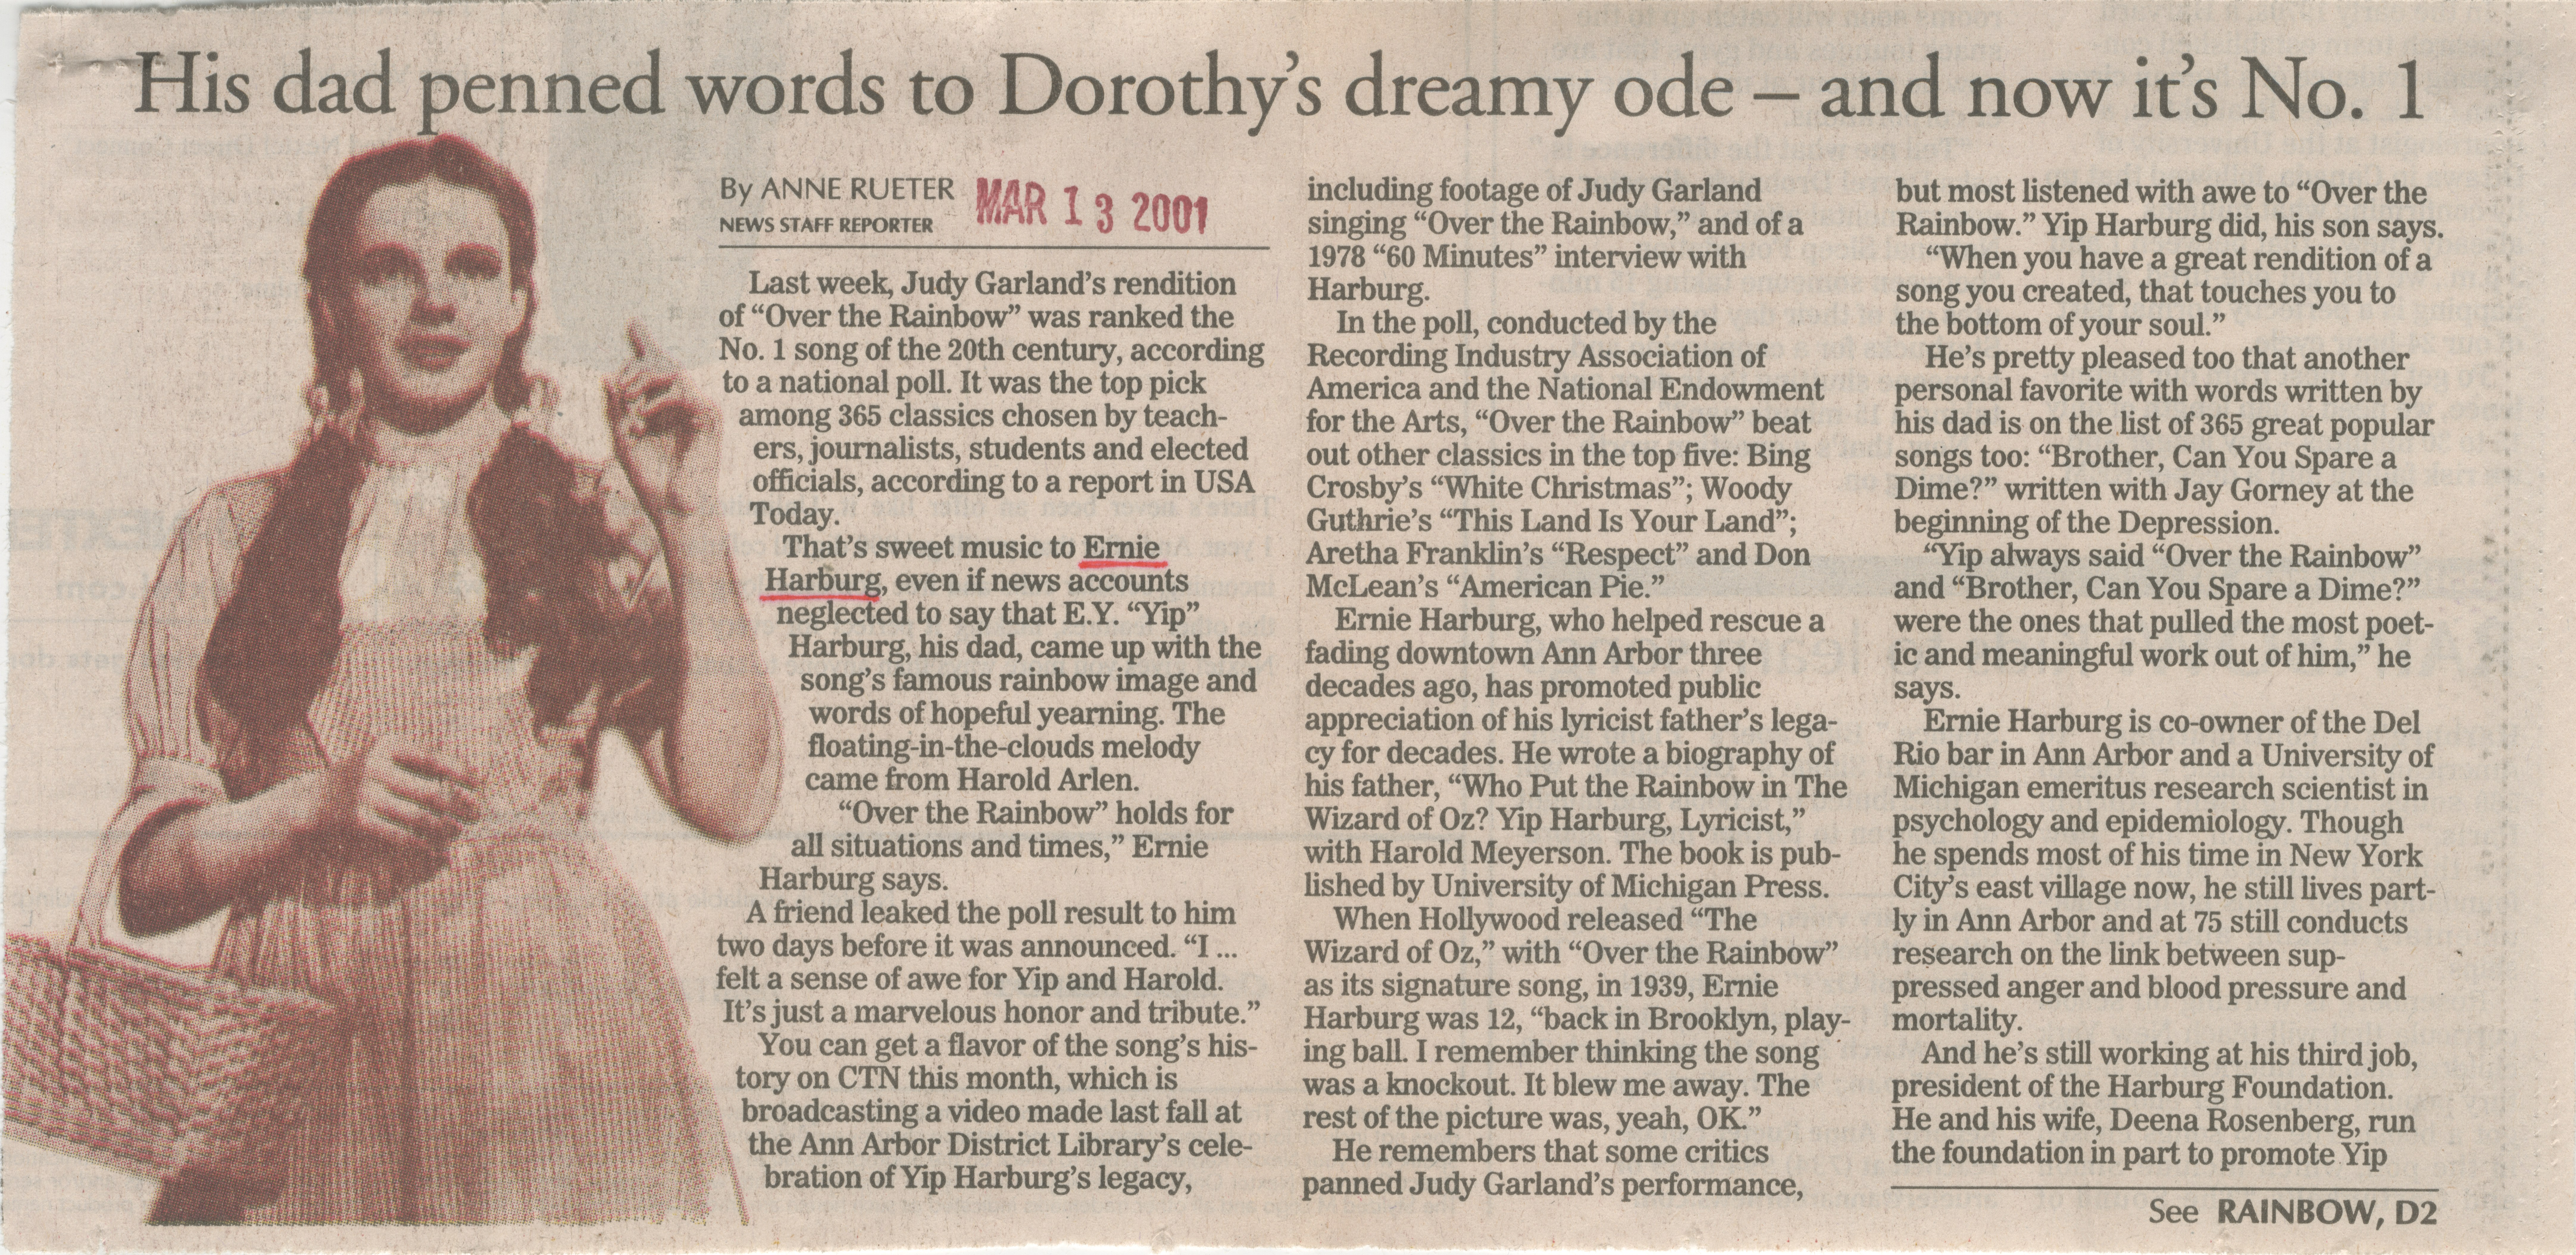 His Dad Penned Words To Dorothy's Dreamy Ode-And Now It's No. 1 image